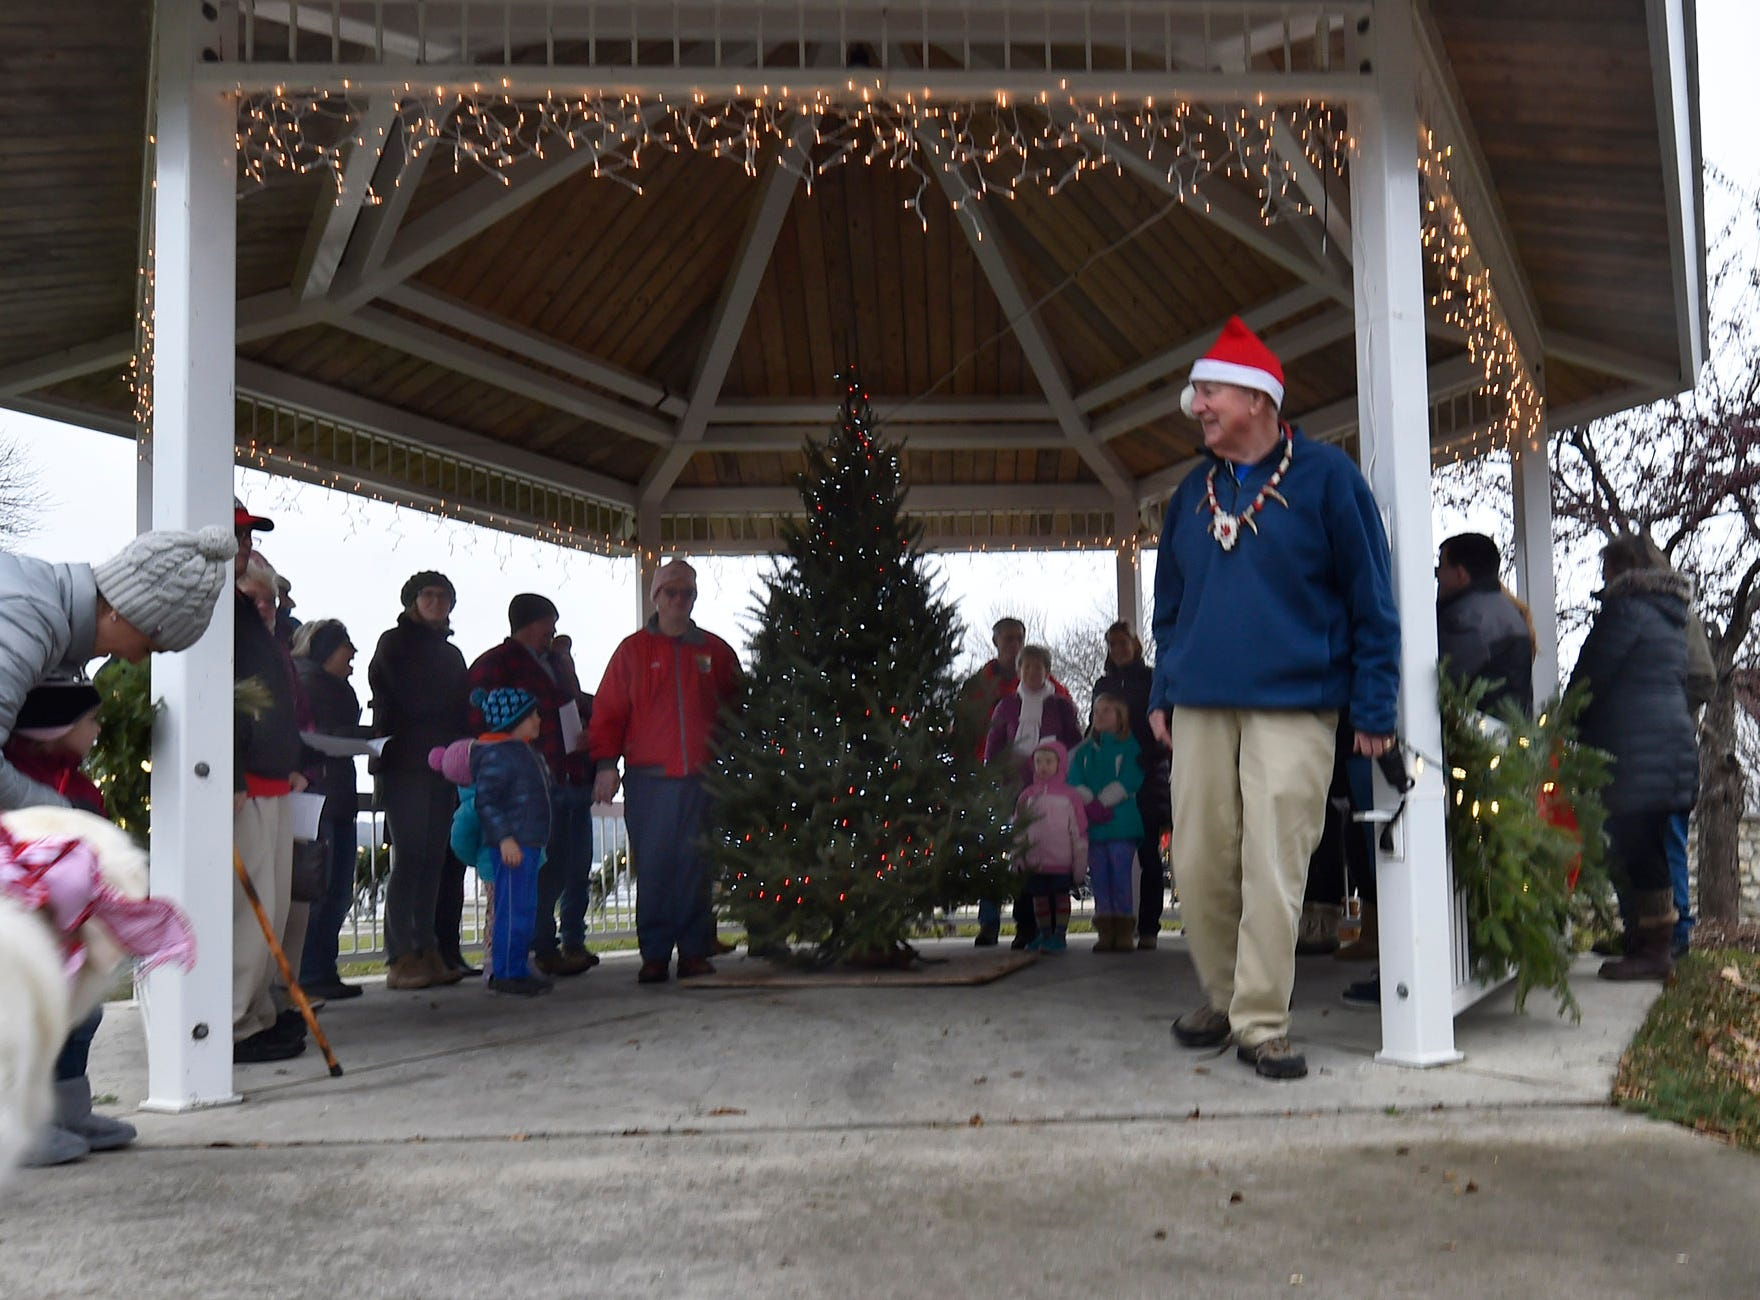 Ephraim's reigning chieftain Tad Dukehart, right, had the honors of flipping the switch for the tree-lighting ceremony at Harborside Park during Christmas in the Village in Ephraim on Saturday, Dec. 1, 2018. Tina M. Gohr/USA TODAY NETWORK-Wisconsin